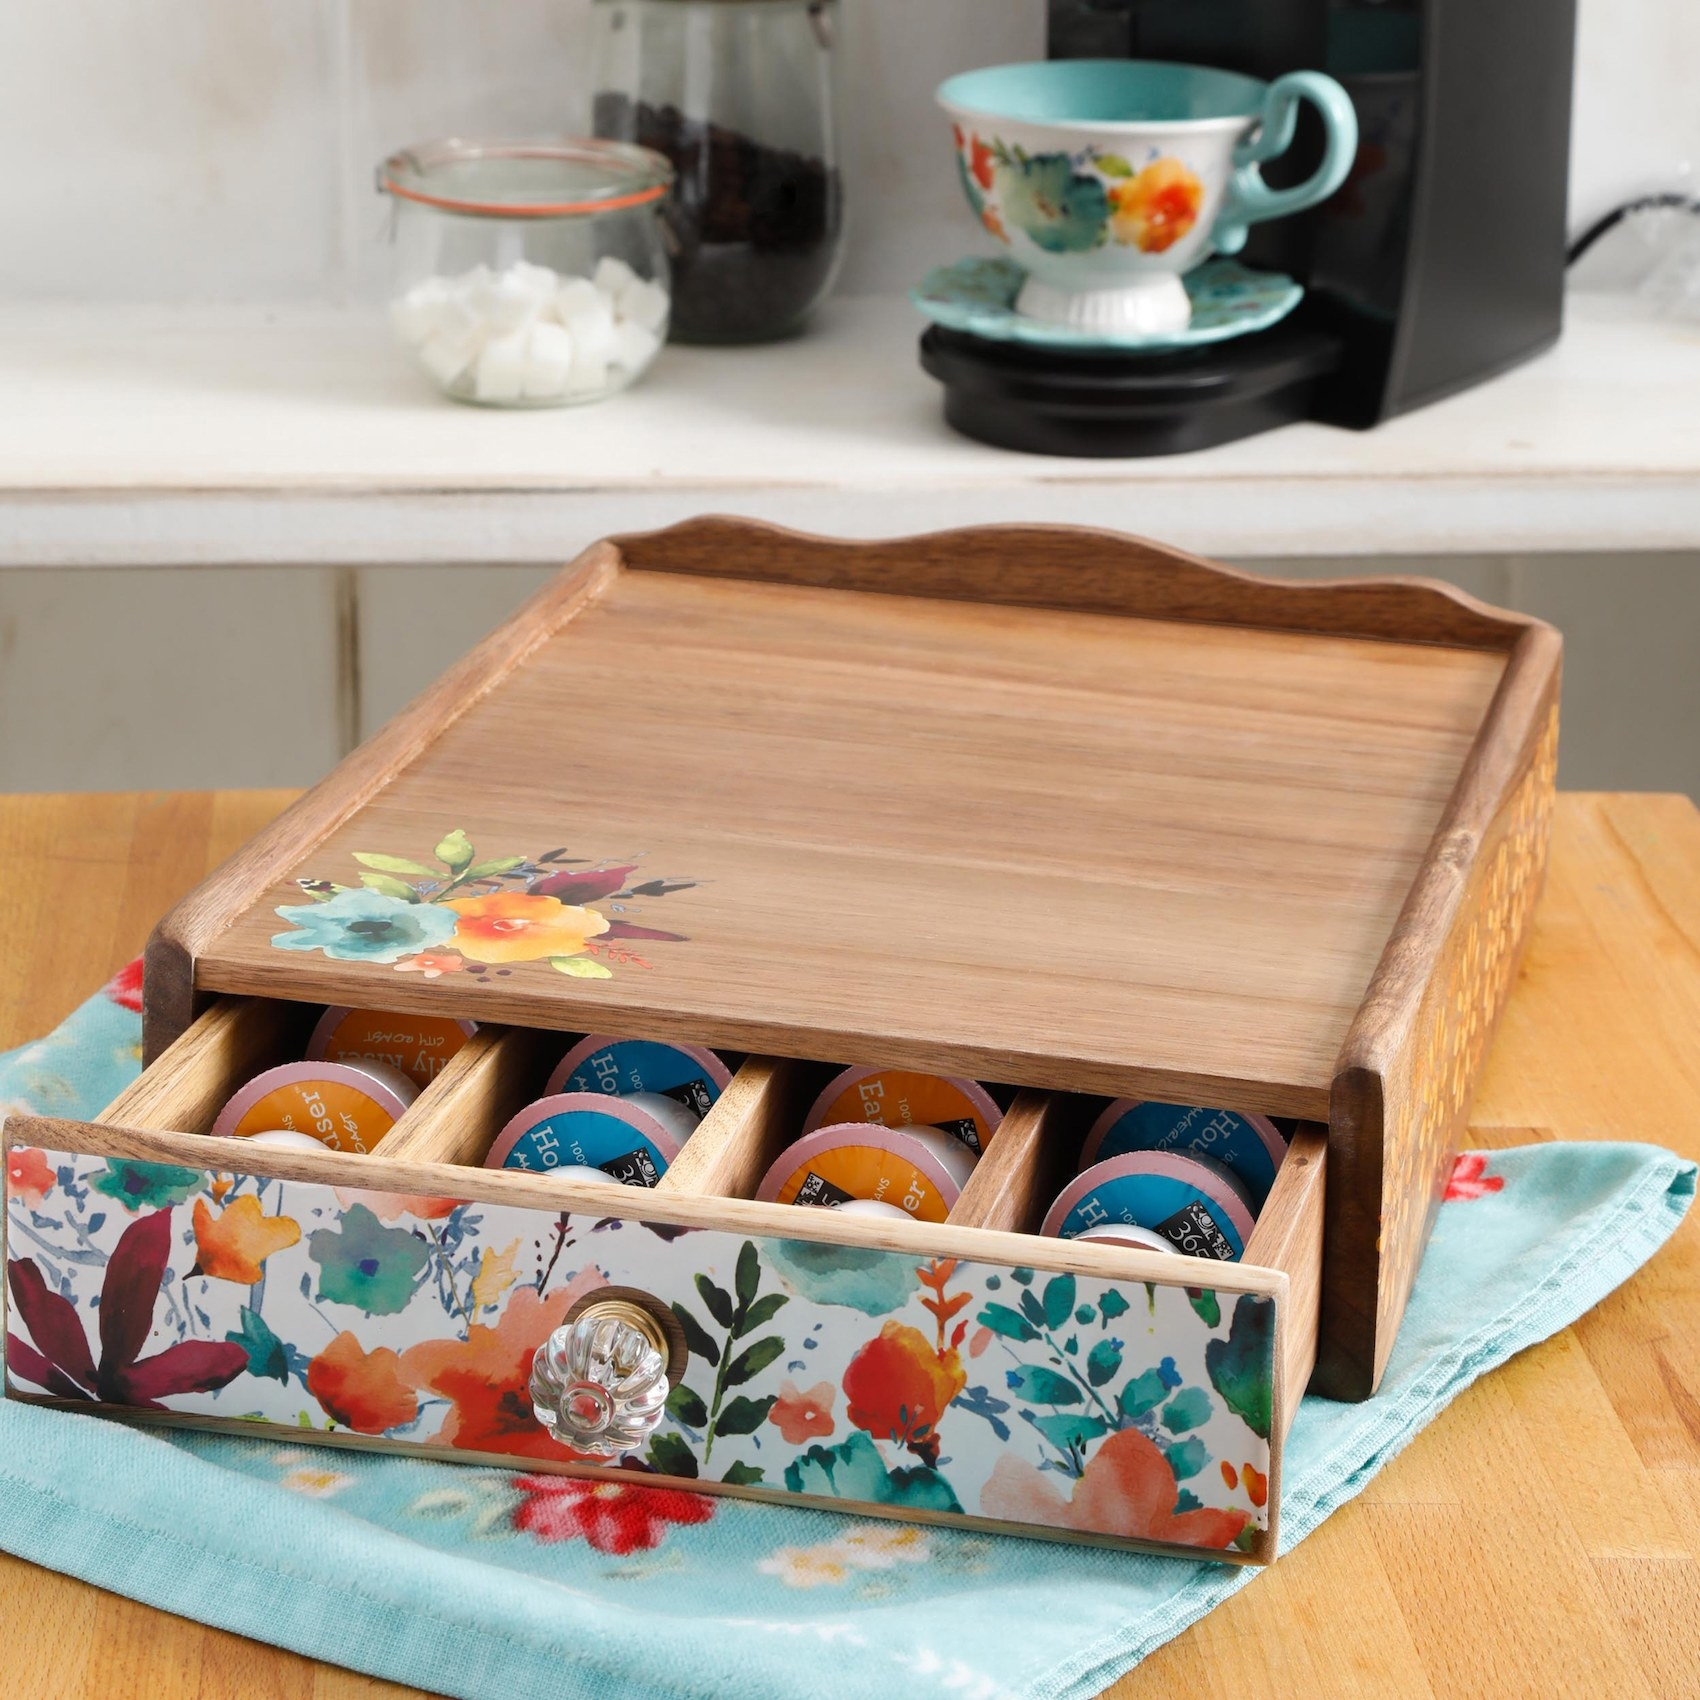 The wooden organizer with a drawer and four internal compartments